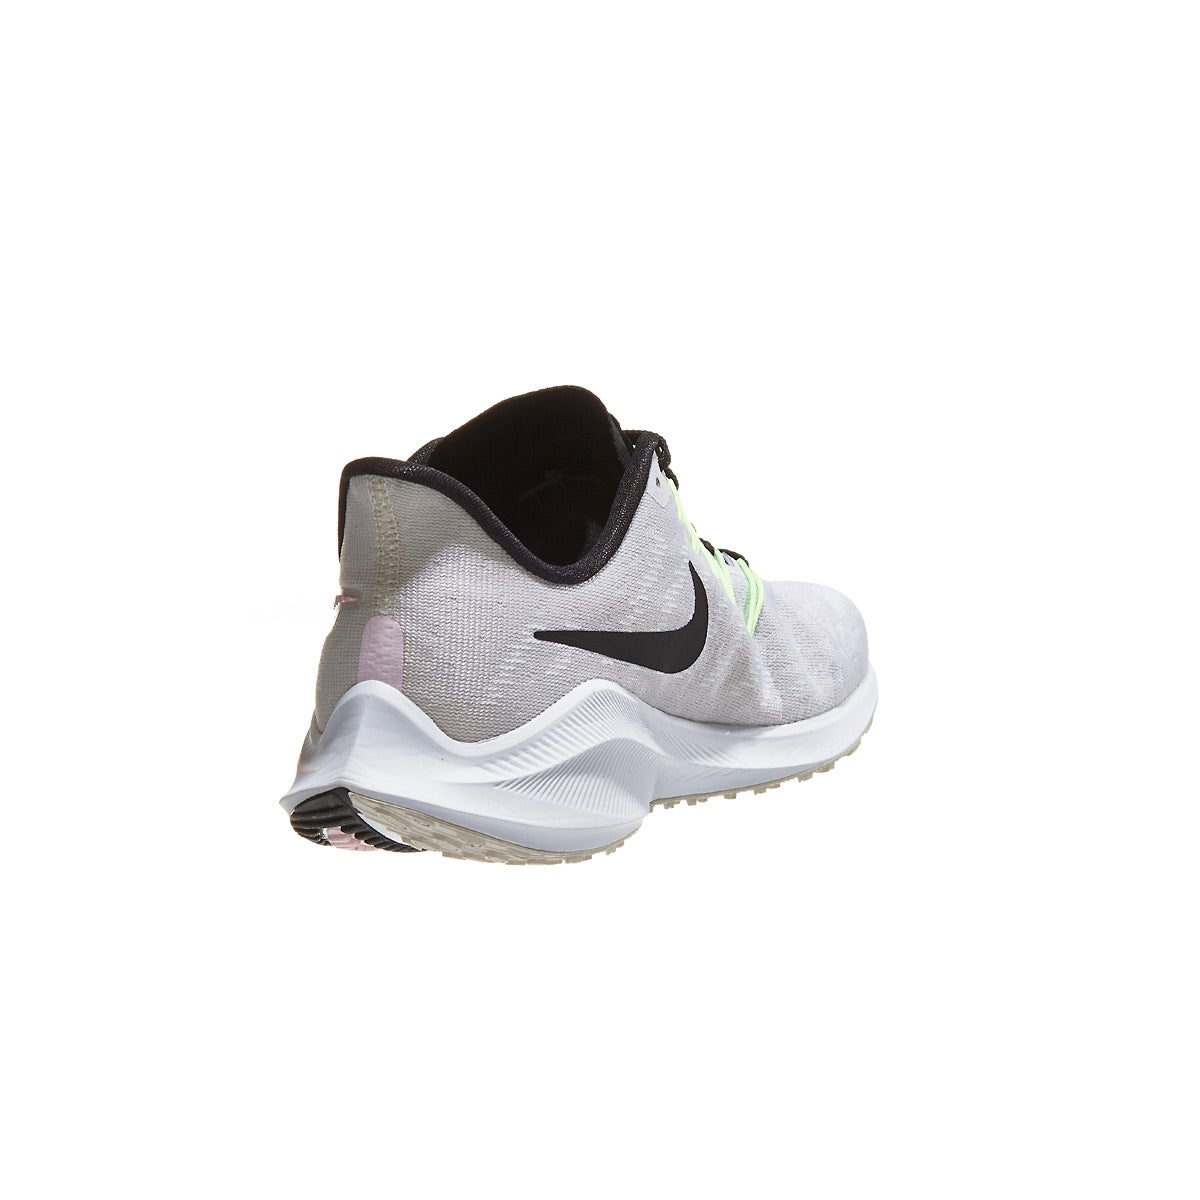 d7f89bf658991 Nike Zoom Vomero 14 Women s Shoes Vast Grey Black Pink 360° View ...